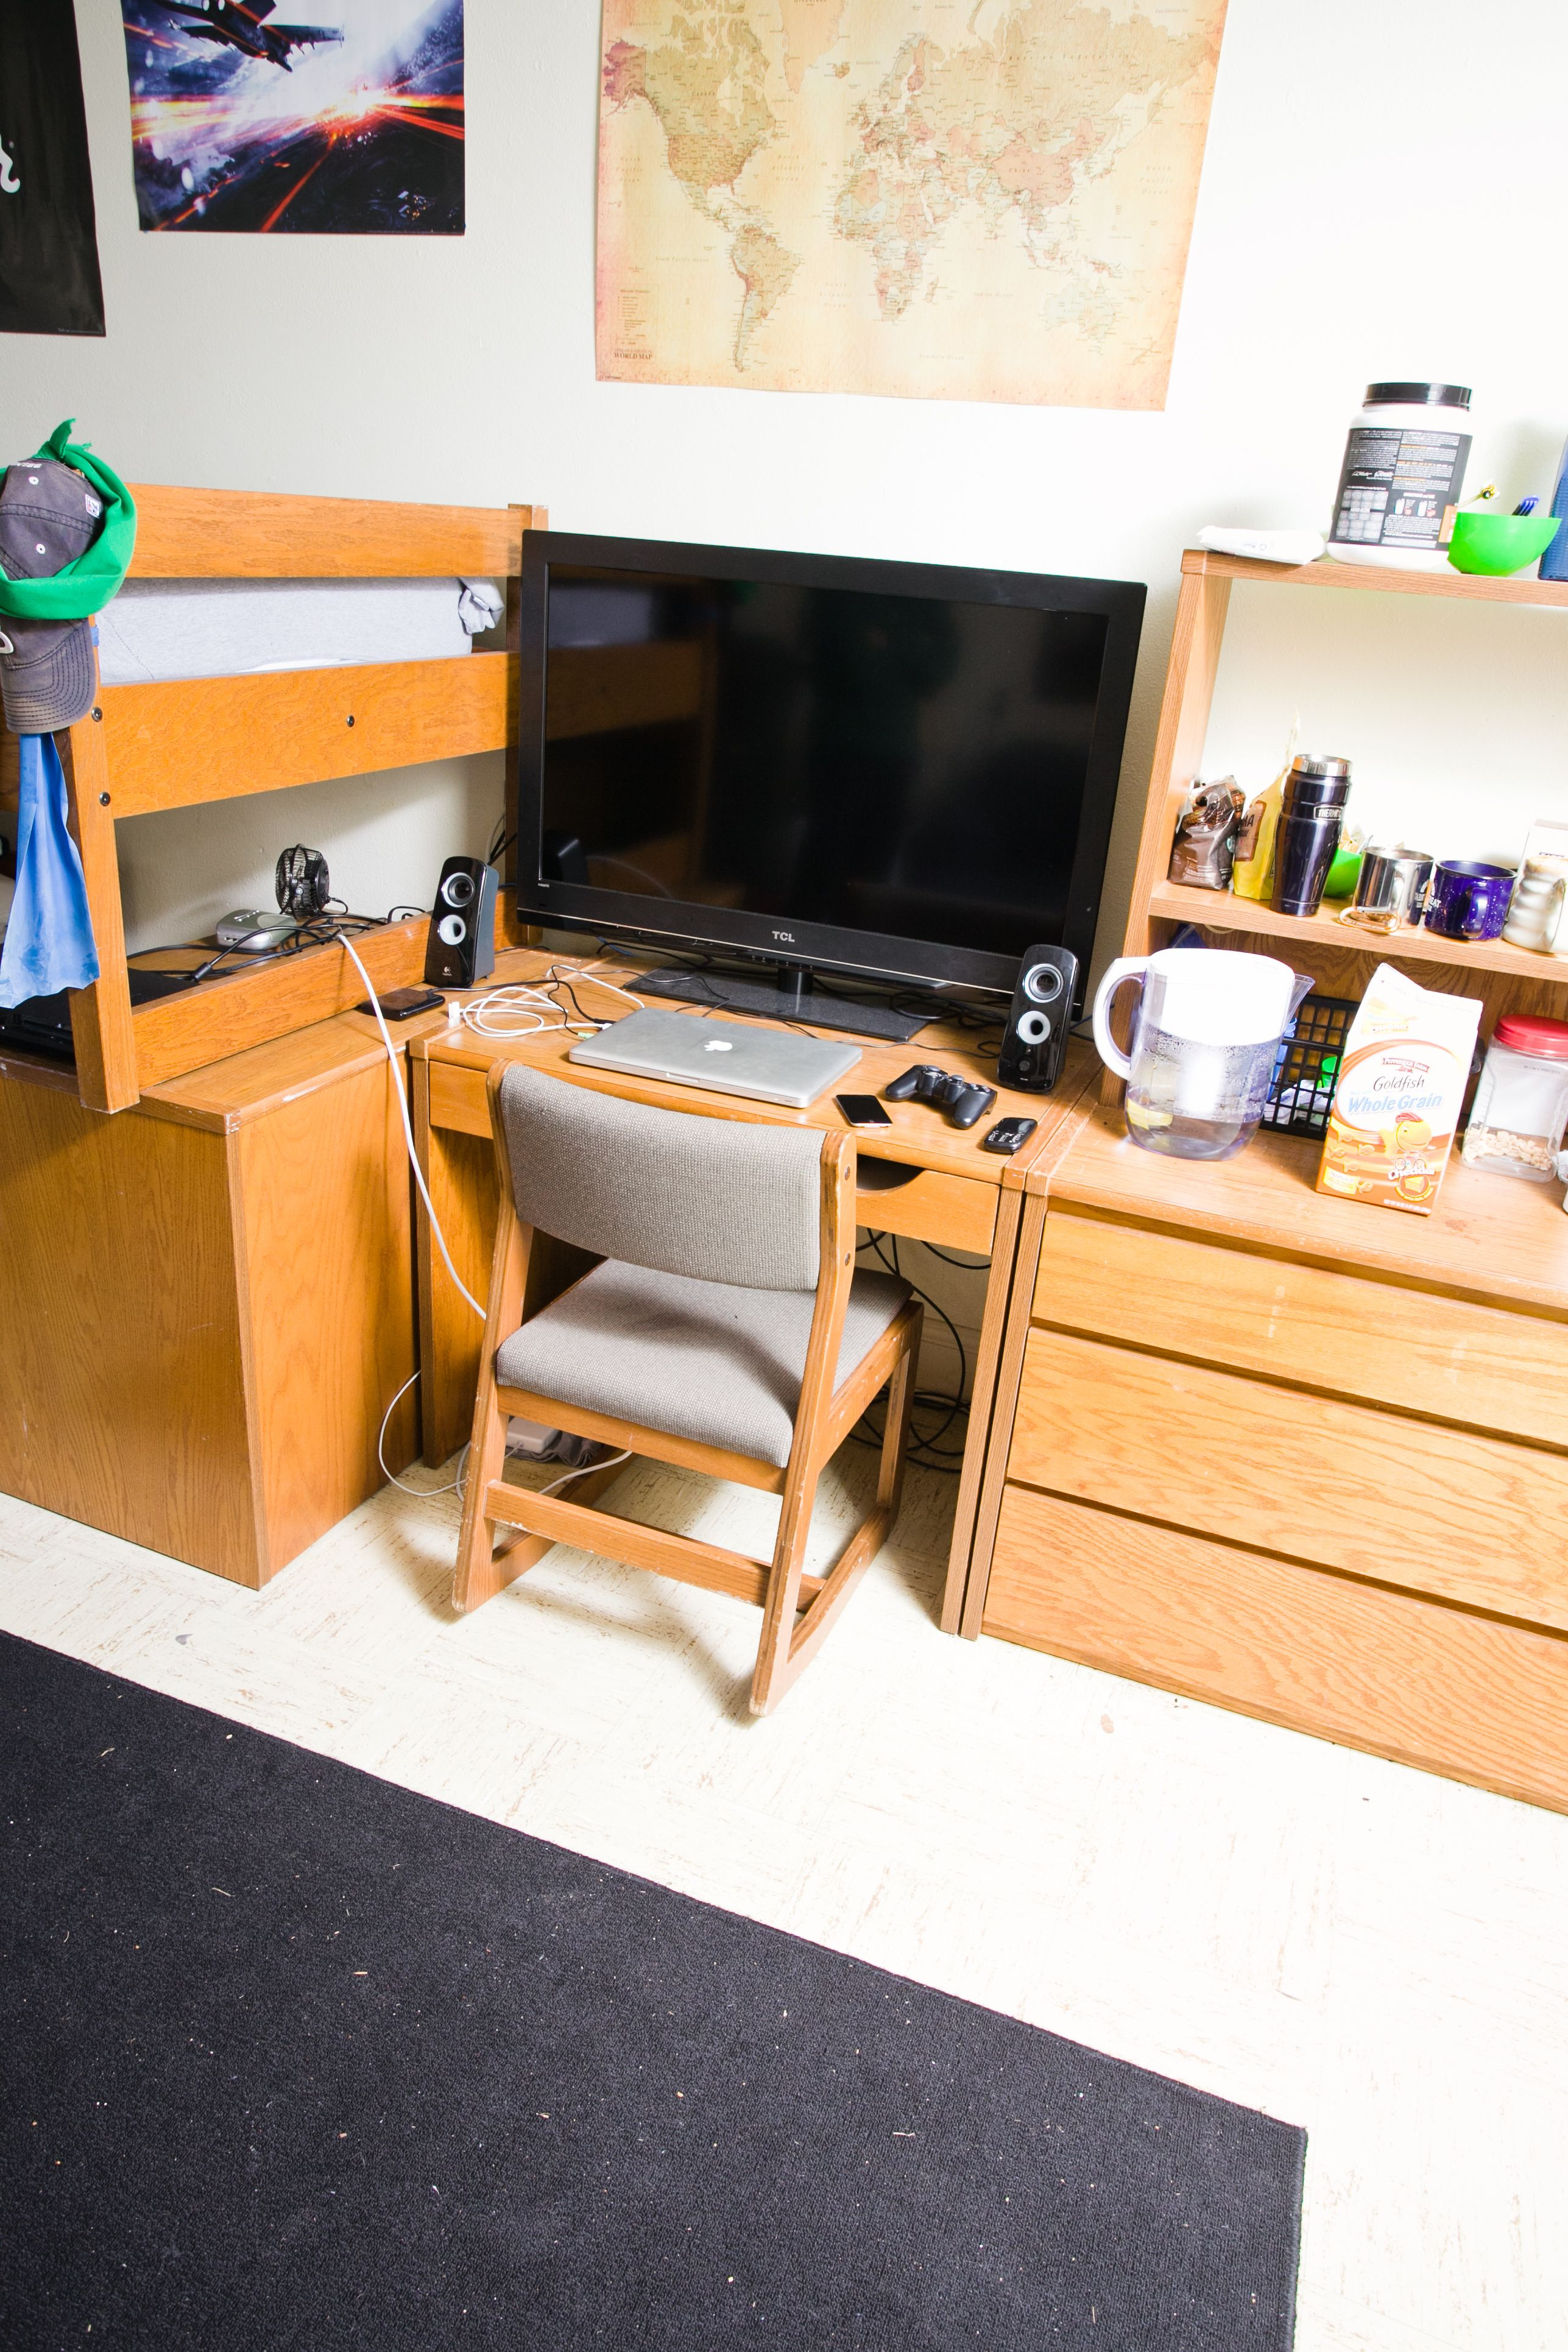 Pin by Montreat College on Dorm Life in 2019 | Diy ... Uc Davis Dorm Room Layout